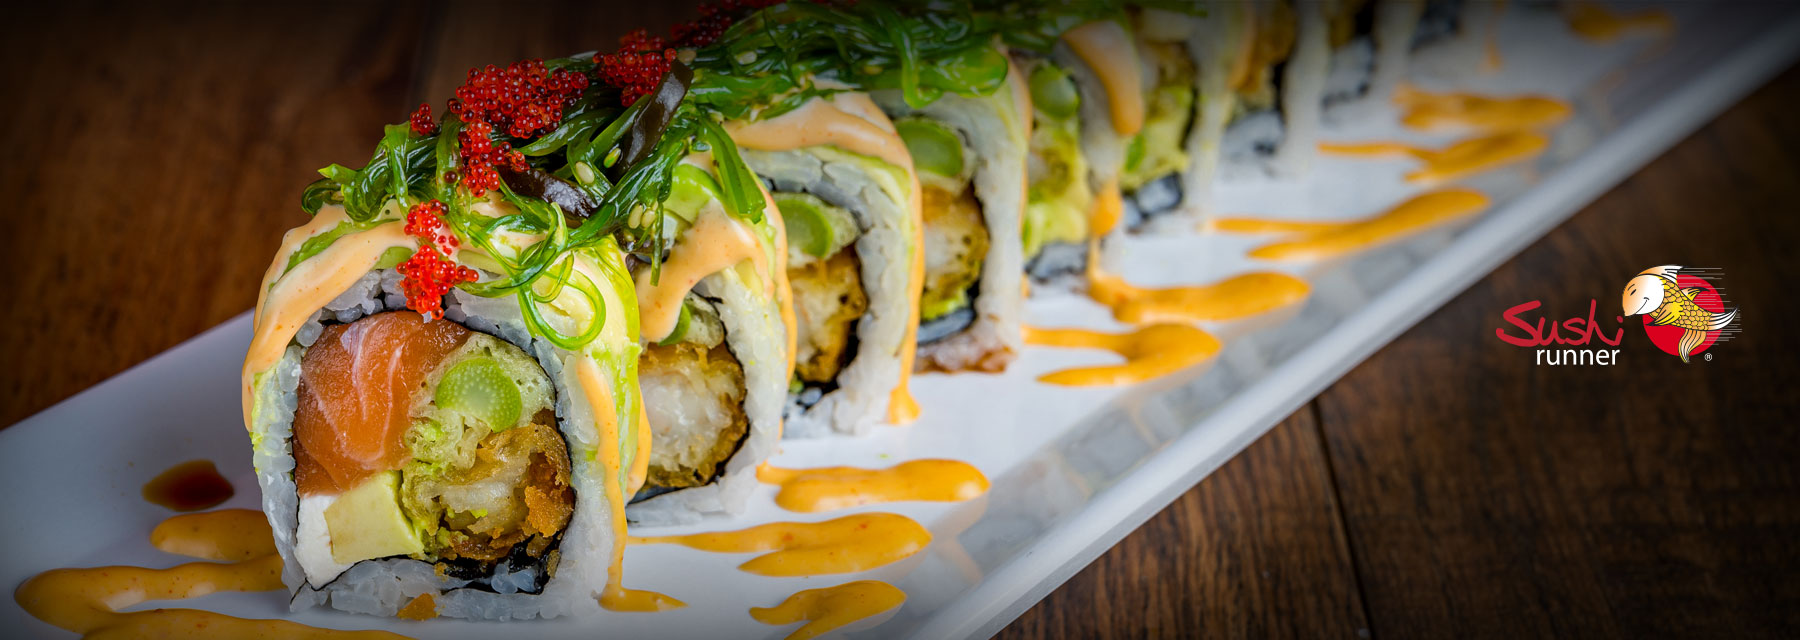 Sushi runner doral coupons